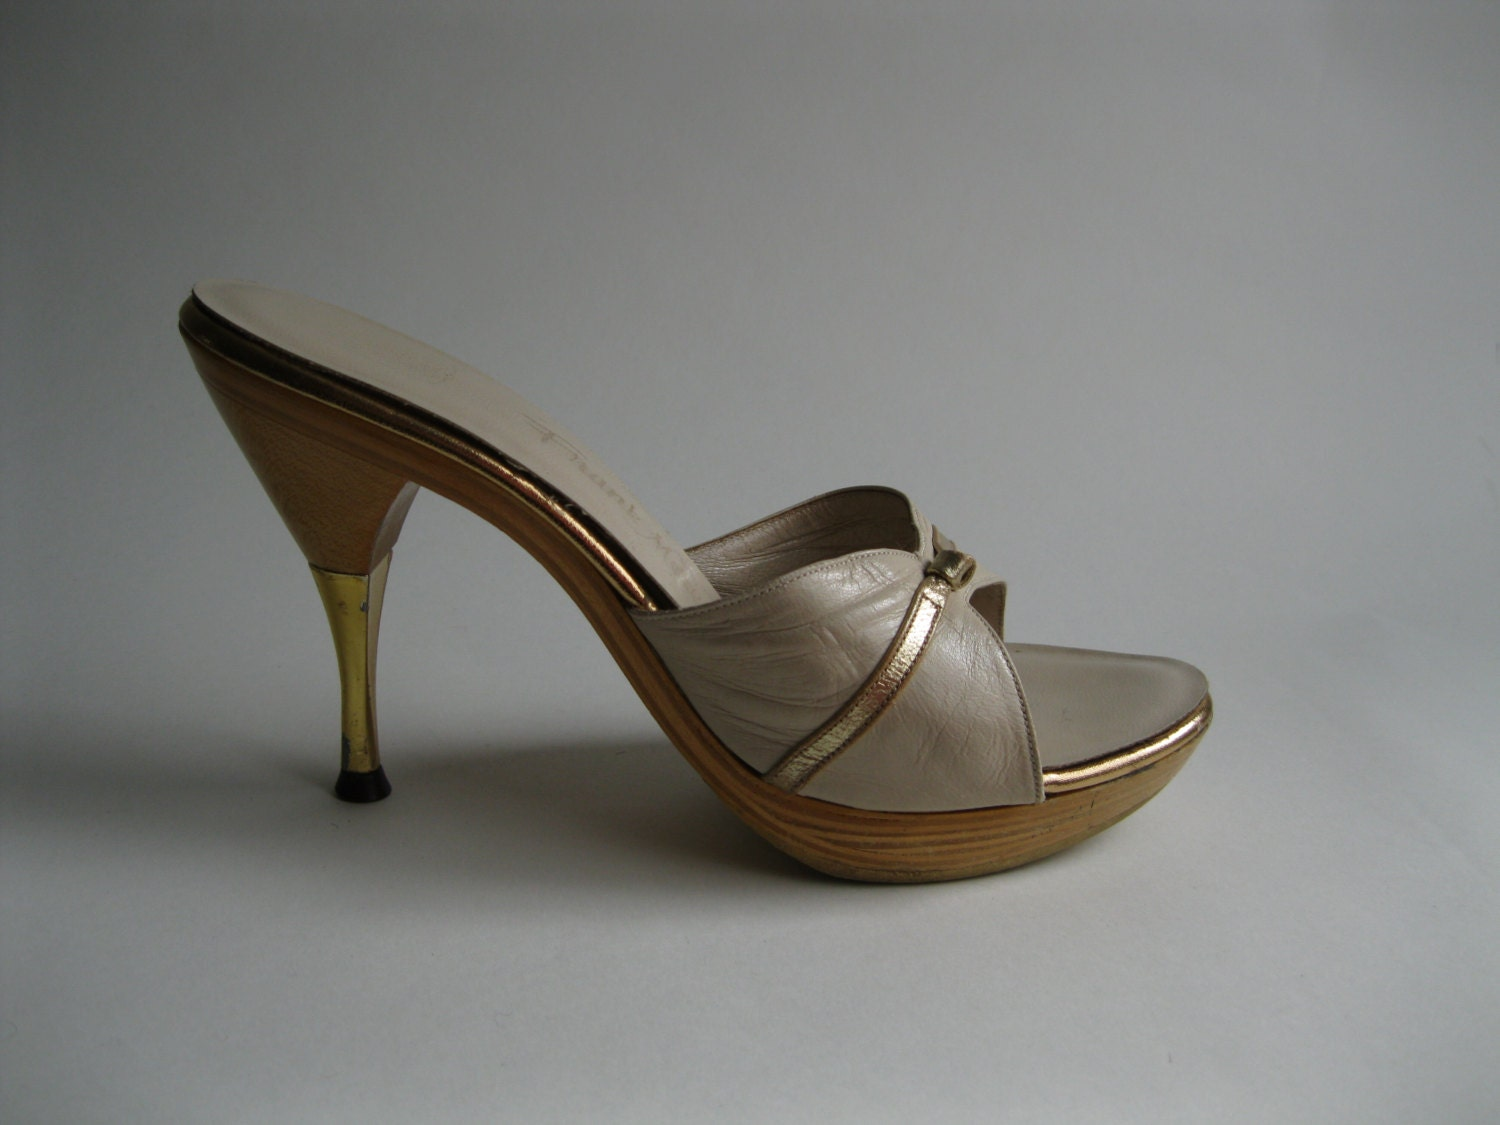 Vintage 1950s Shoes Gold Leather Stiletto High Heel Wedding